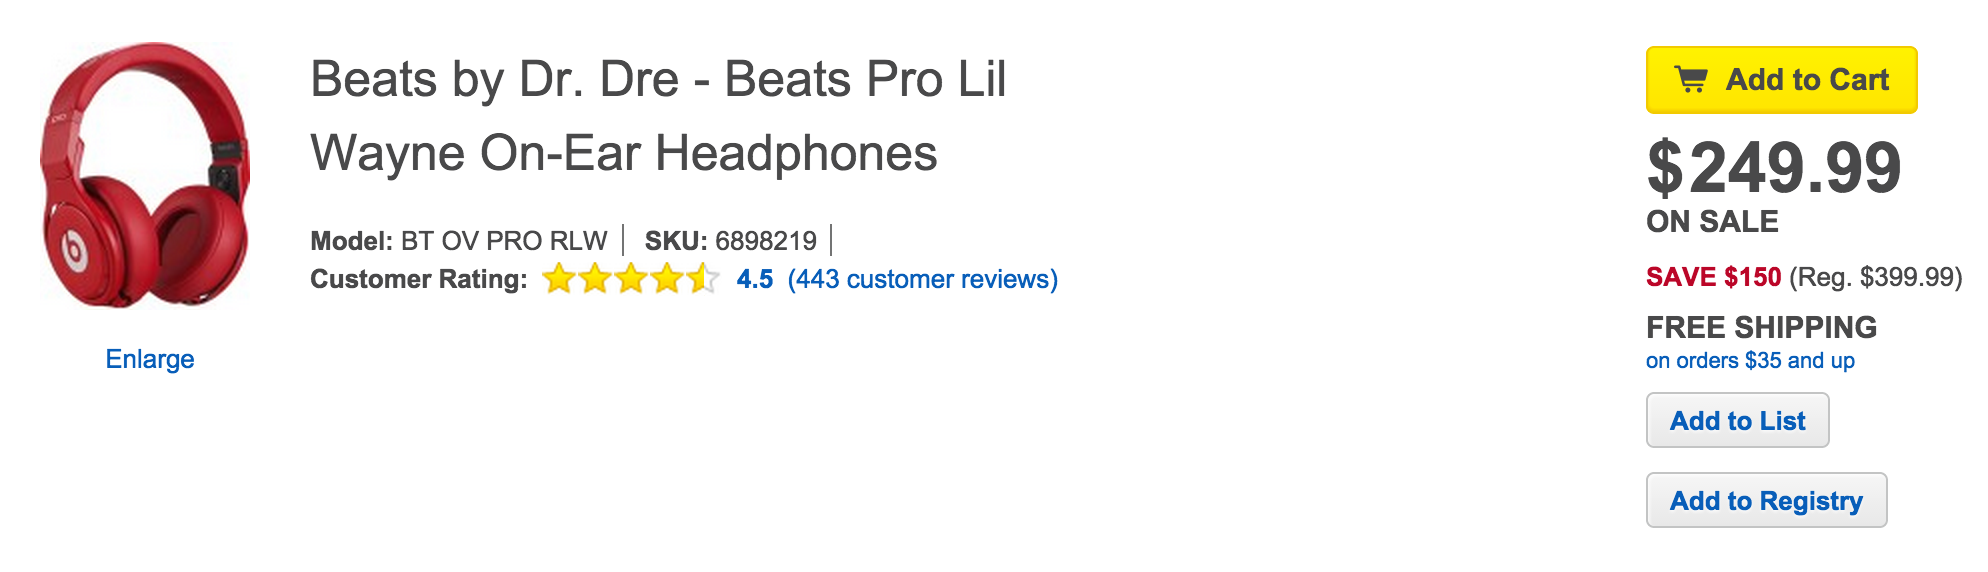 beats-by-dre-best-buy-deal